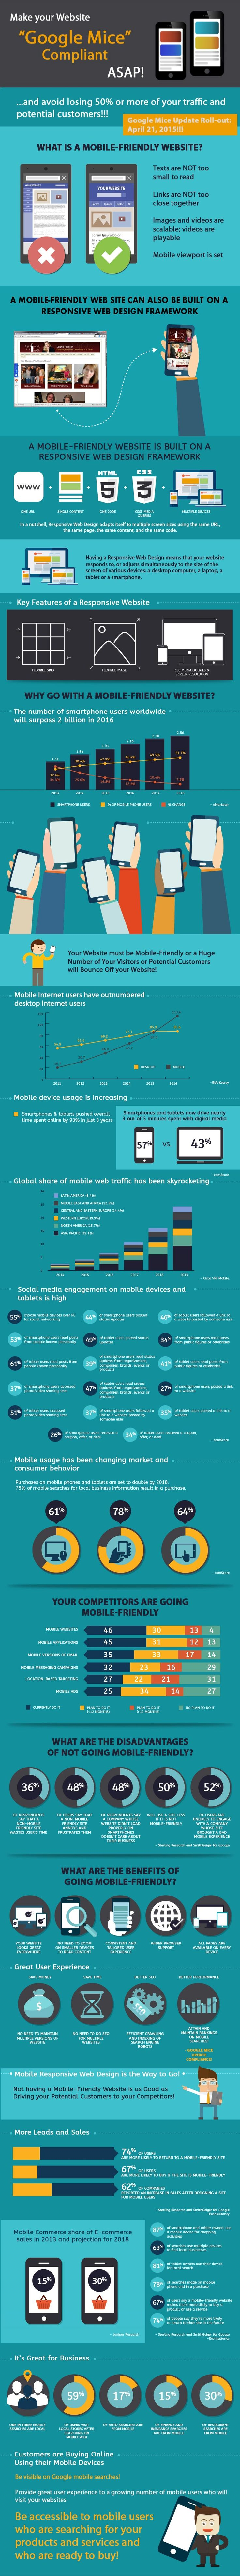 See the impact of the Google Mobile Friendly update. #Infographic Is your site Google Mobile Friendly? How to fix it